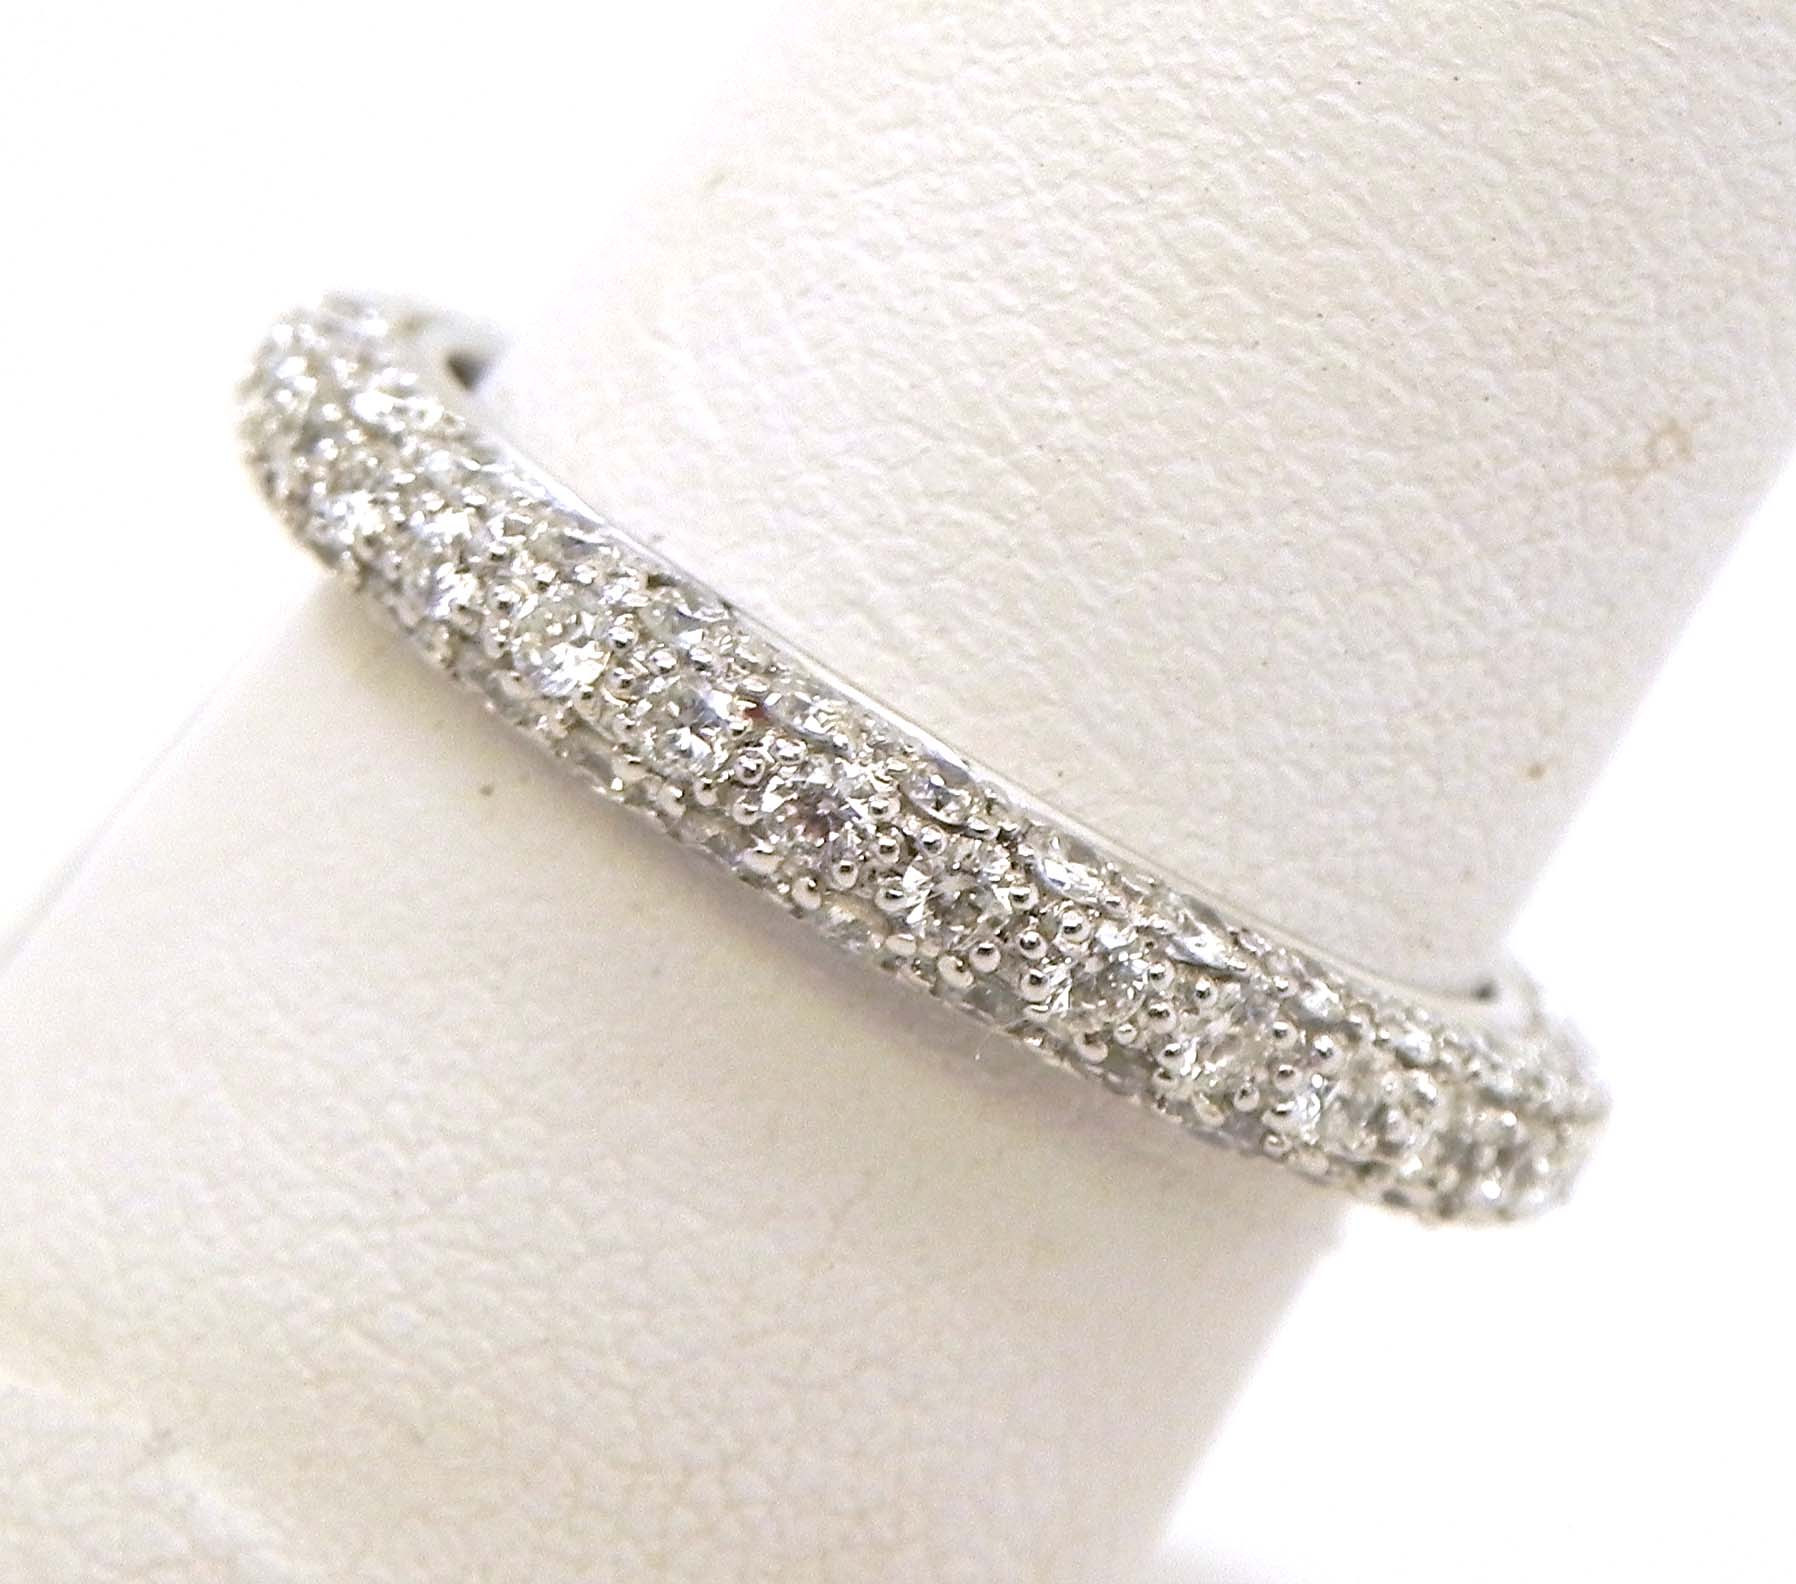 ladies 18k white gold 3 row diamonds eternity wedding band white gold wedding bands White Gold 3 Row Diamonds Eternity Wedding Band 00 Previous Next